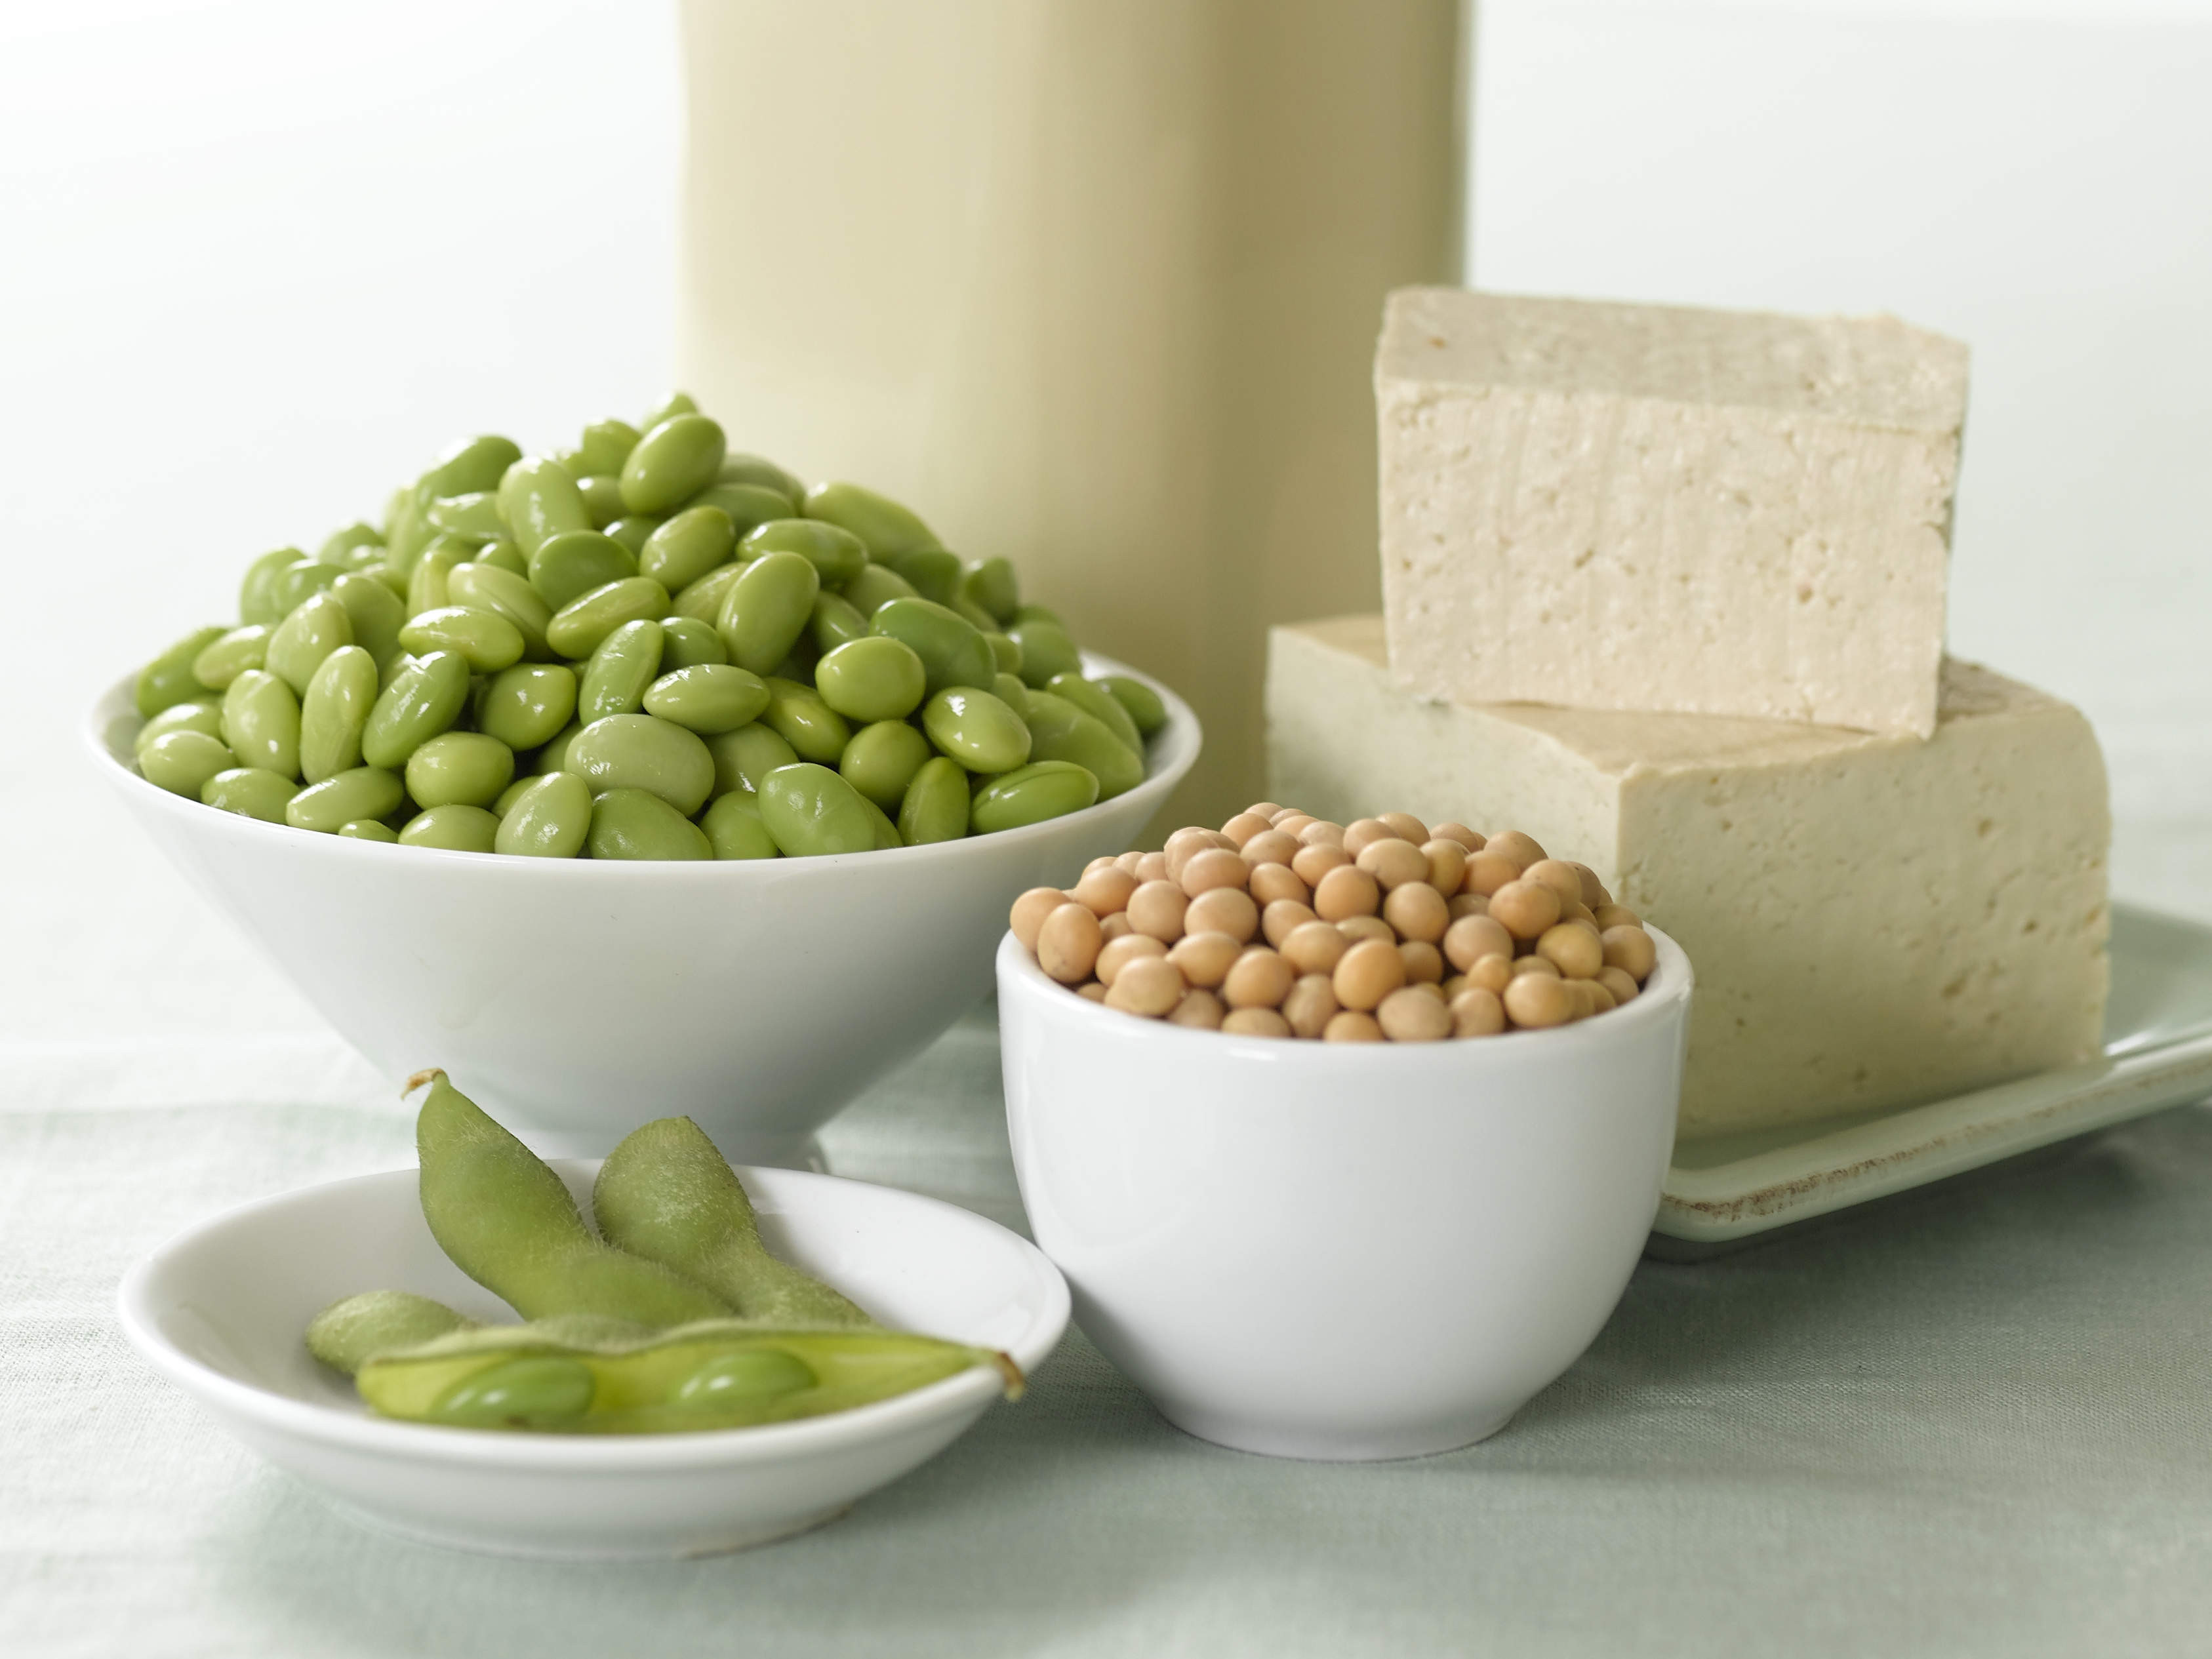 Protein Vegetarian Food  Best Vegan and Ve arian Protein Sources Health